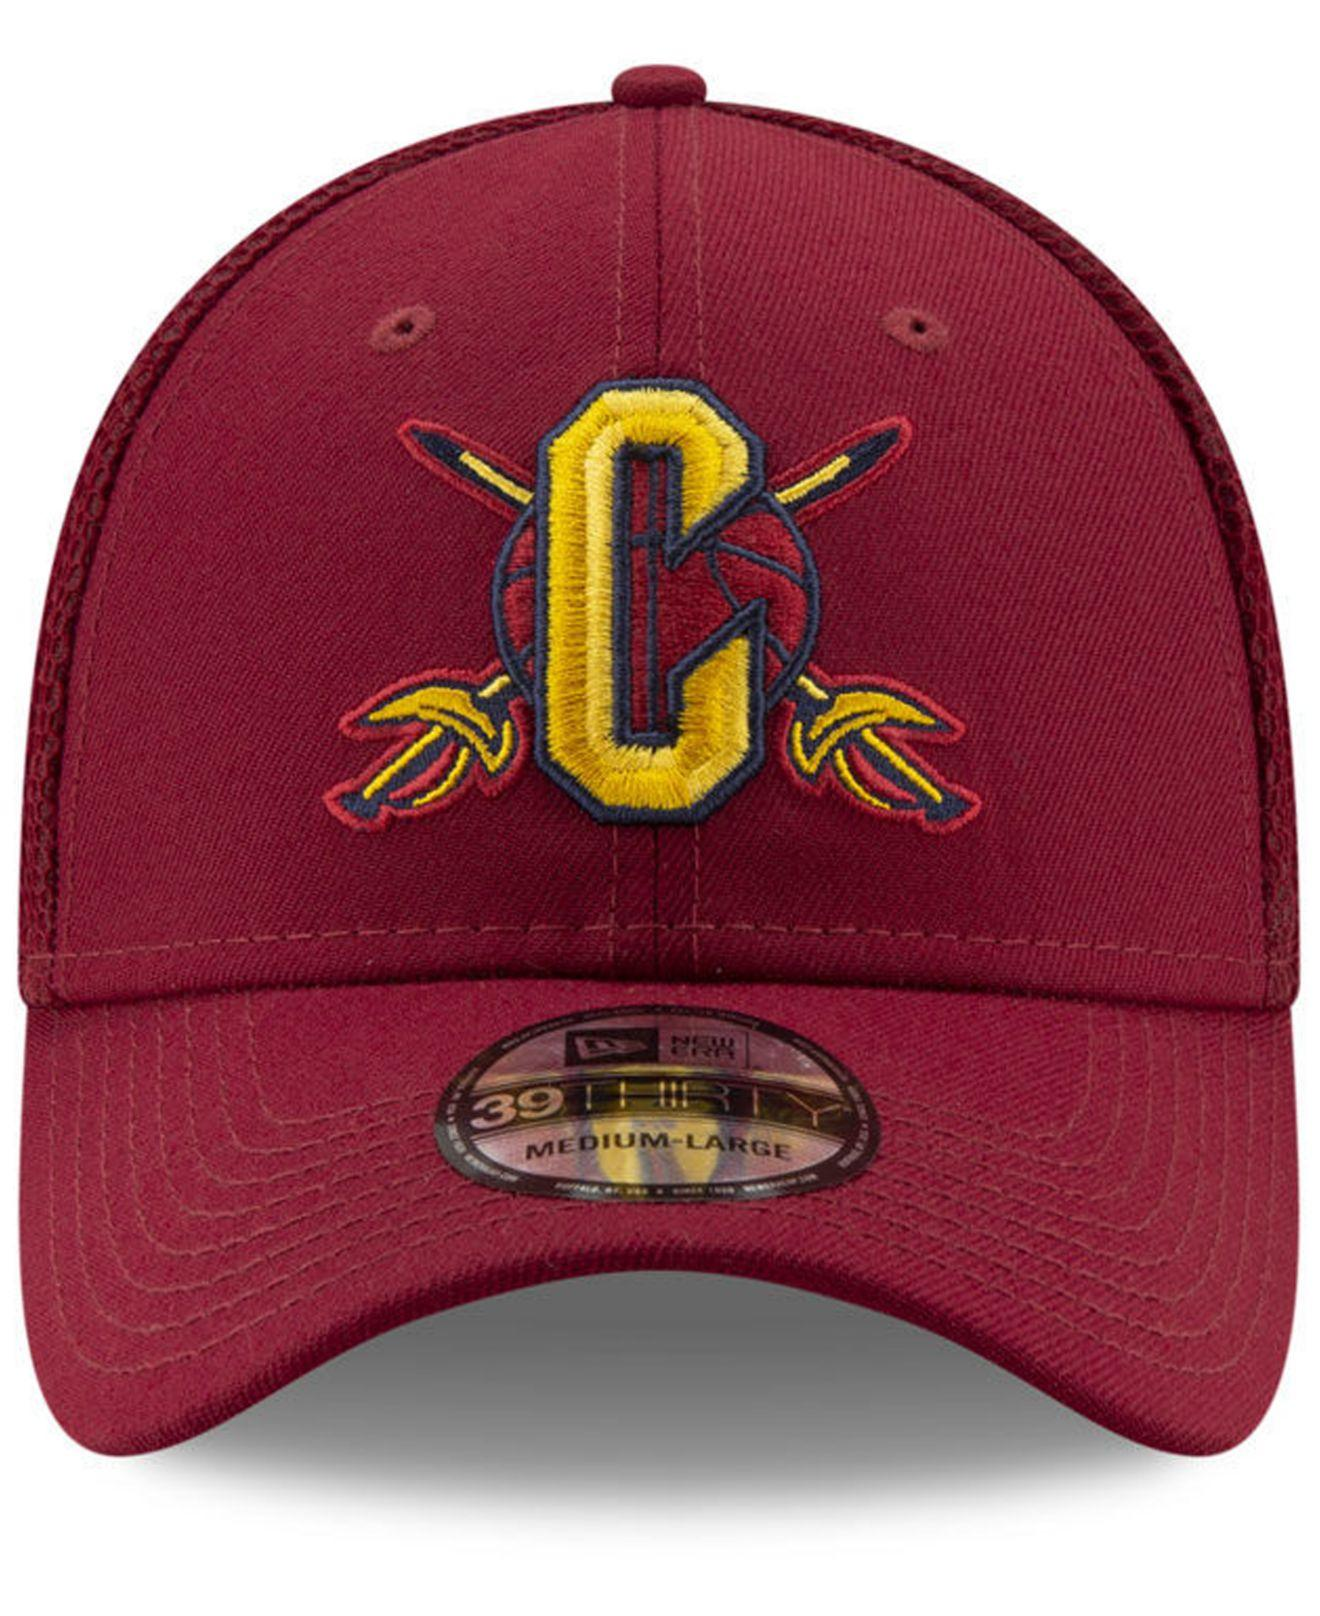 new arrivals ee30e a63e3 Lyst - KTZ Cleveland Cavaliers Back Half 39thirty Cap in Red for Men